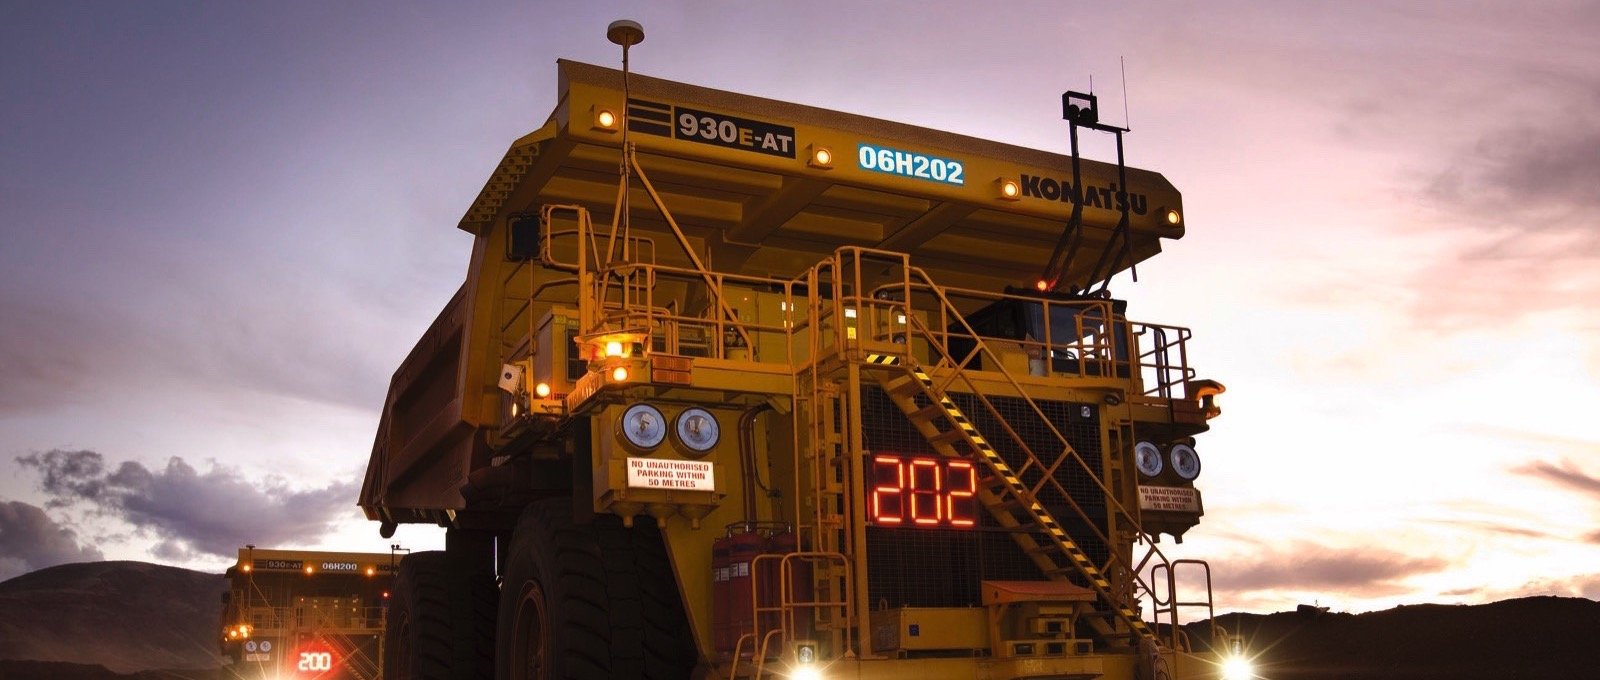 Rio Tinto to expand Autonomous Fleet as Part of $5 billion Productivity Drive